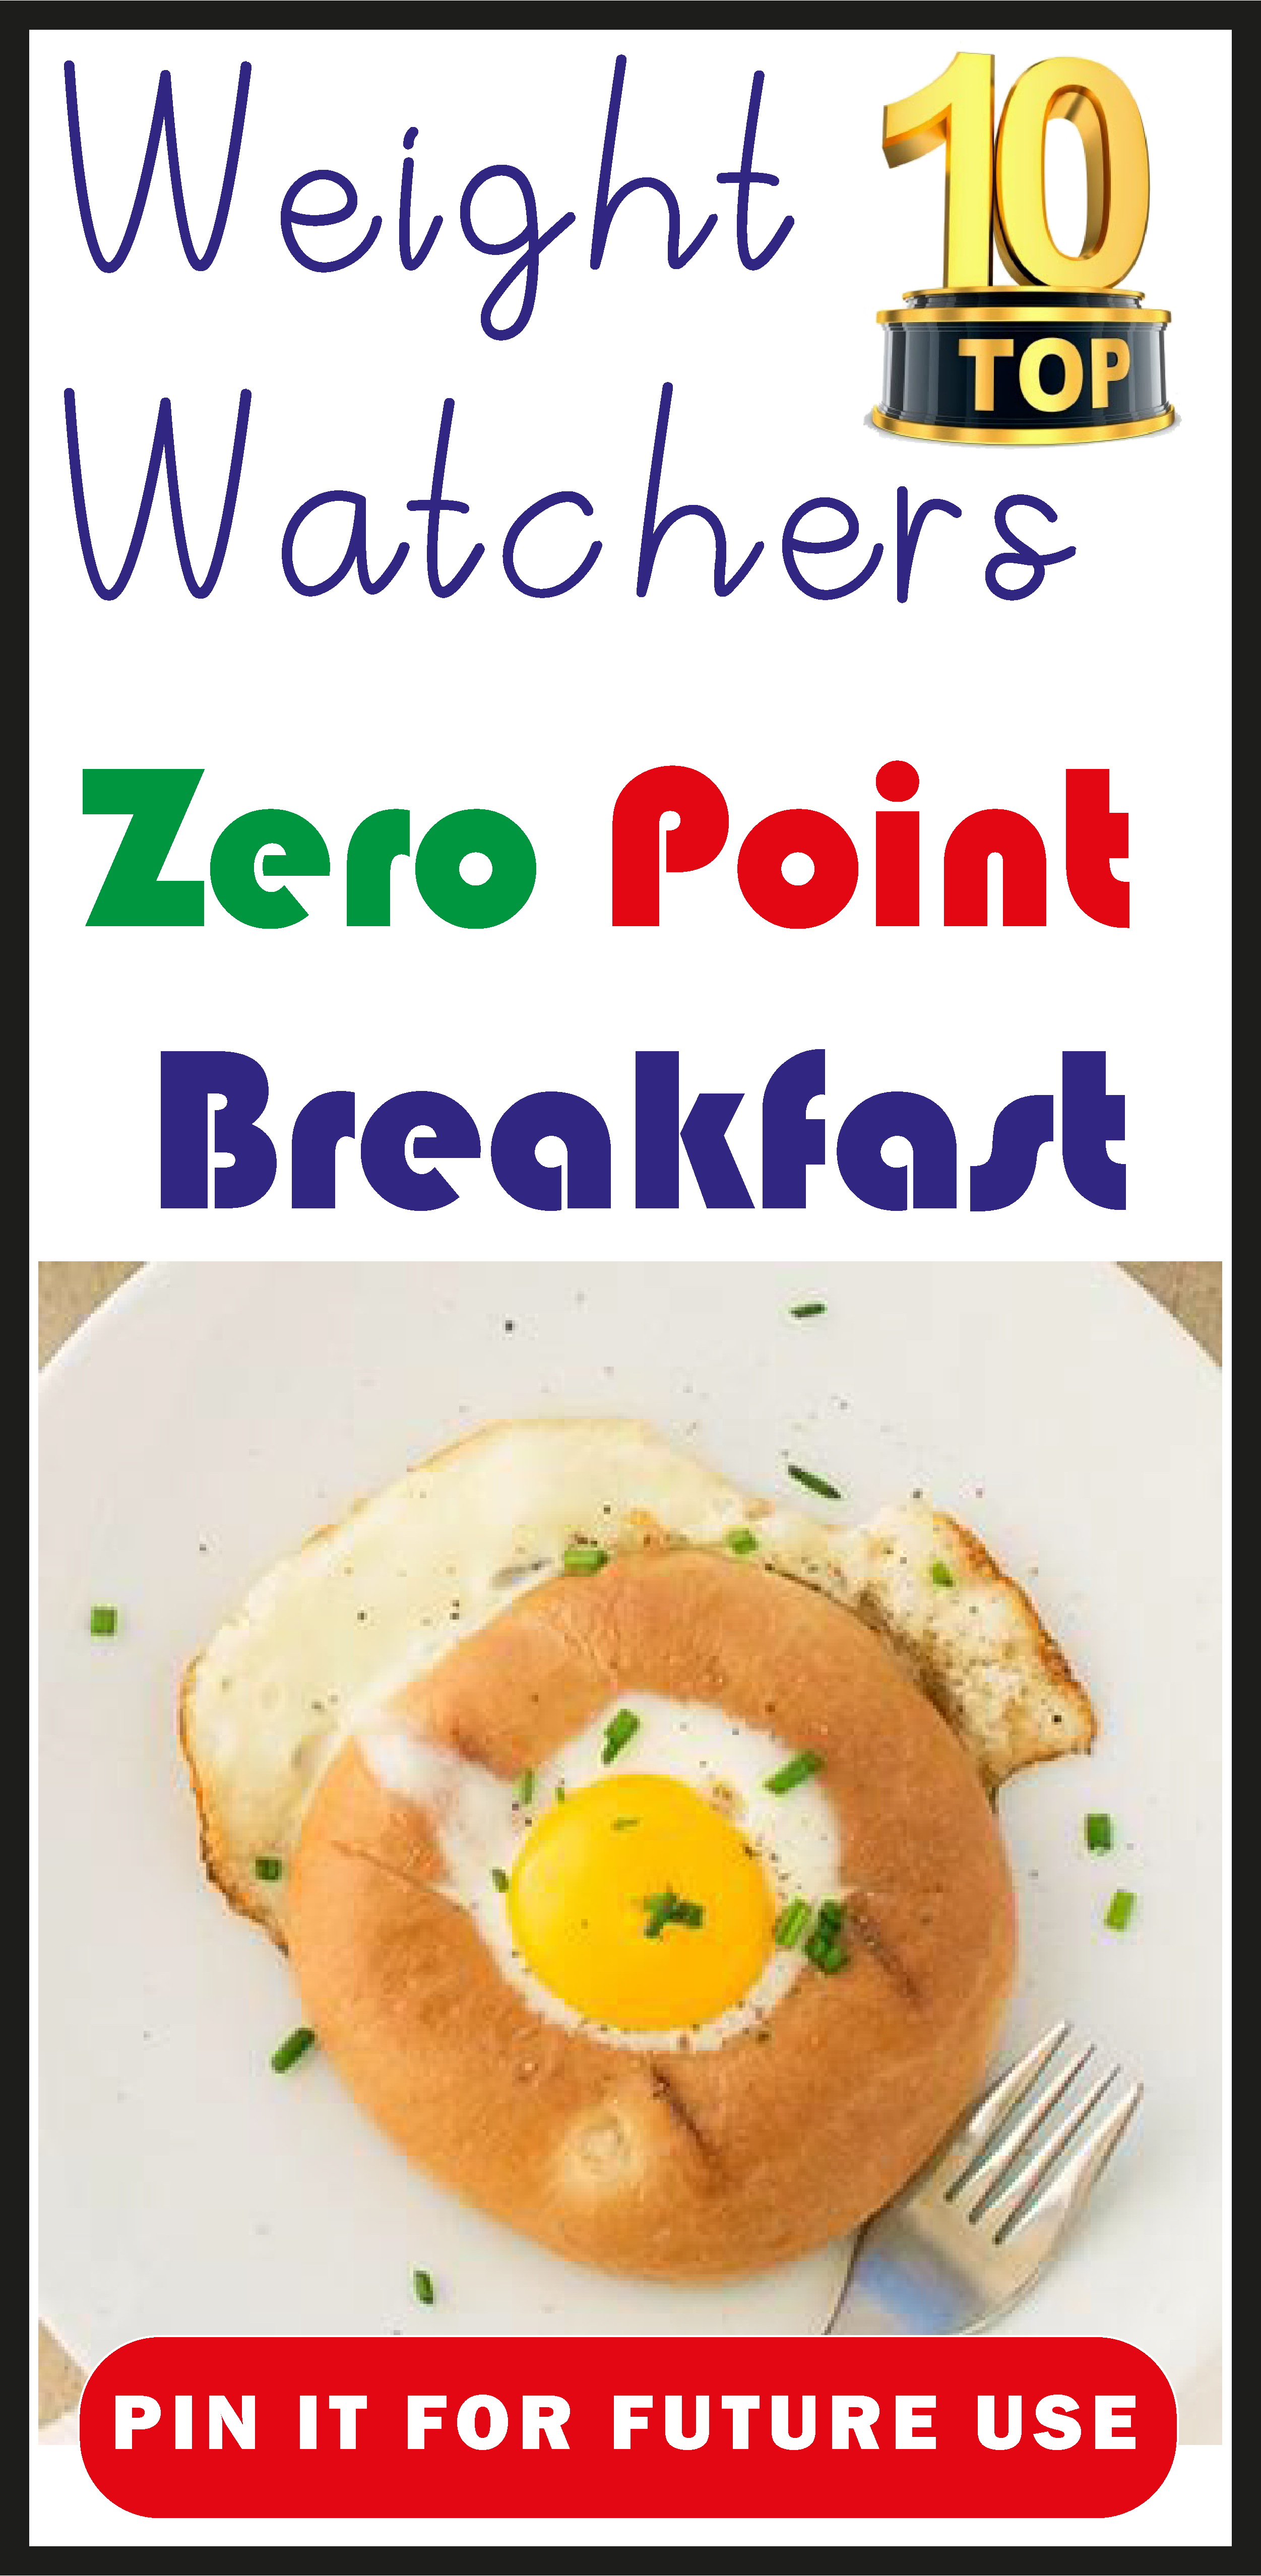 zero point recipes freestyle - Weight watchers recipes